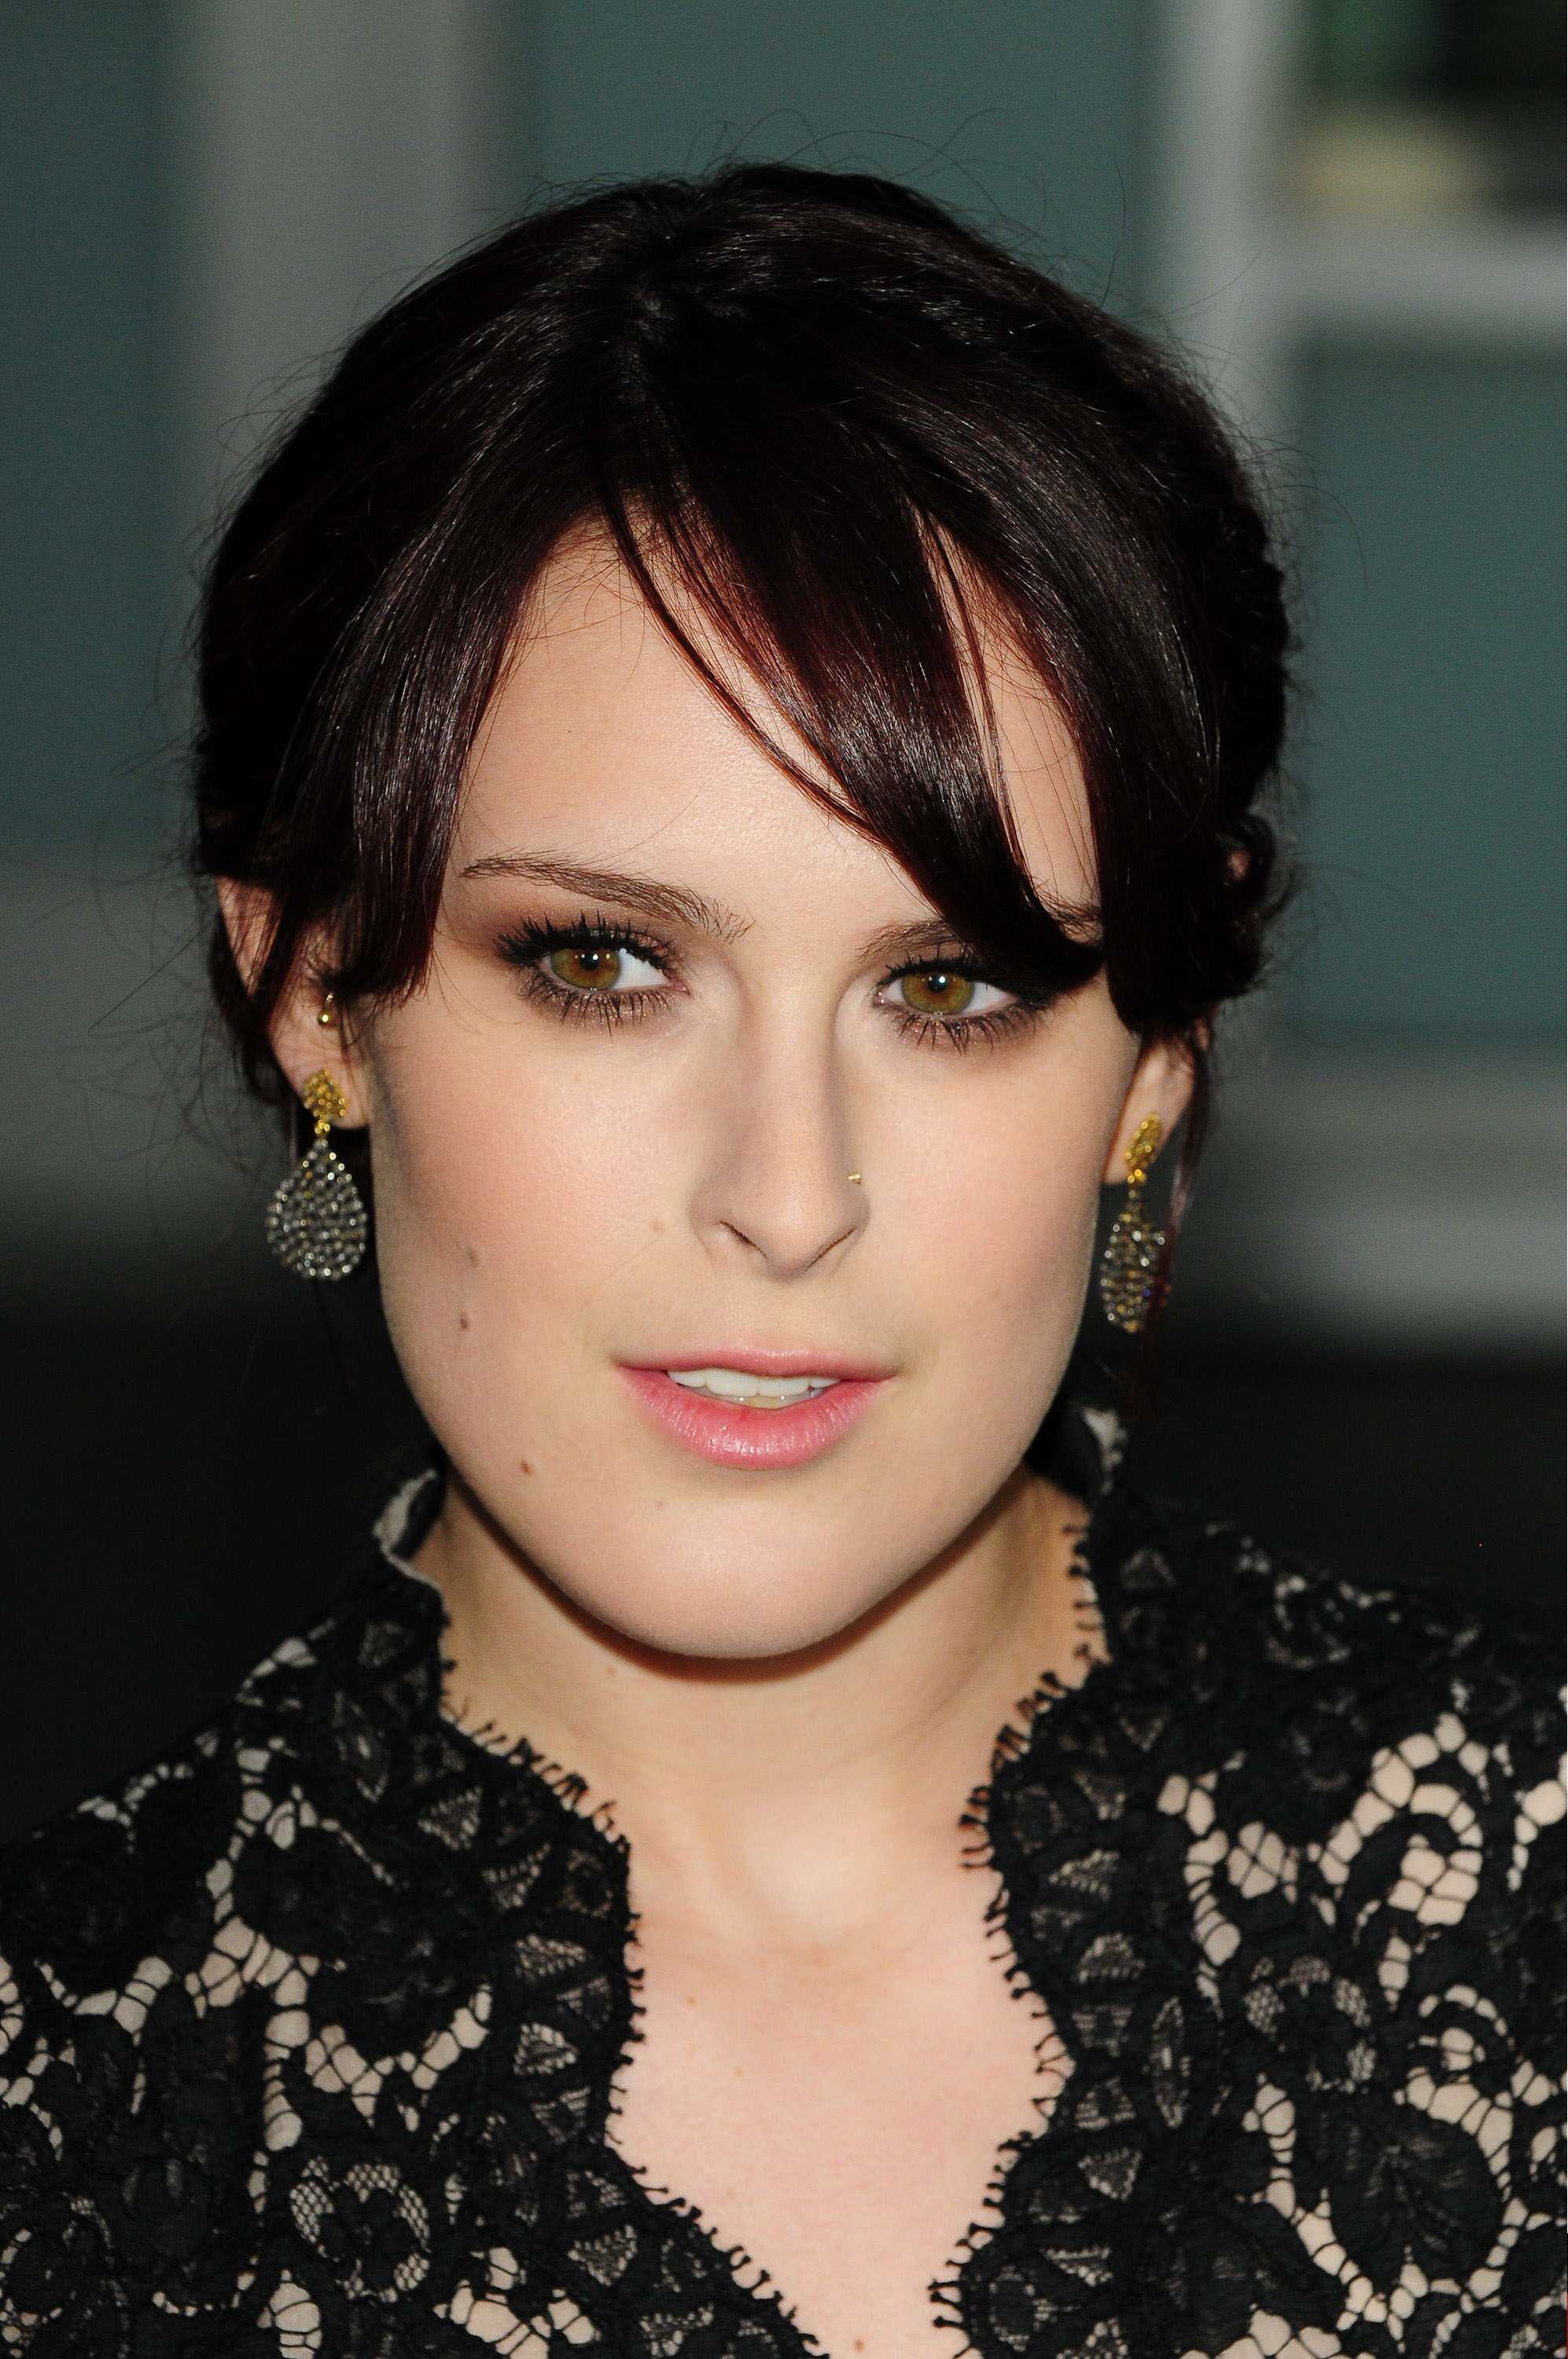 rumer willis HD Wallpaper